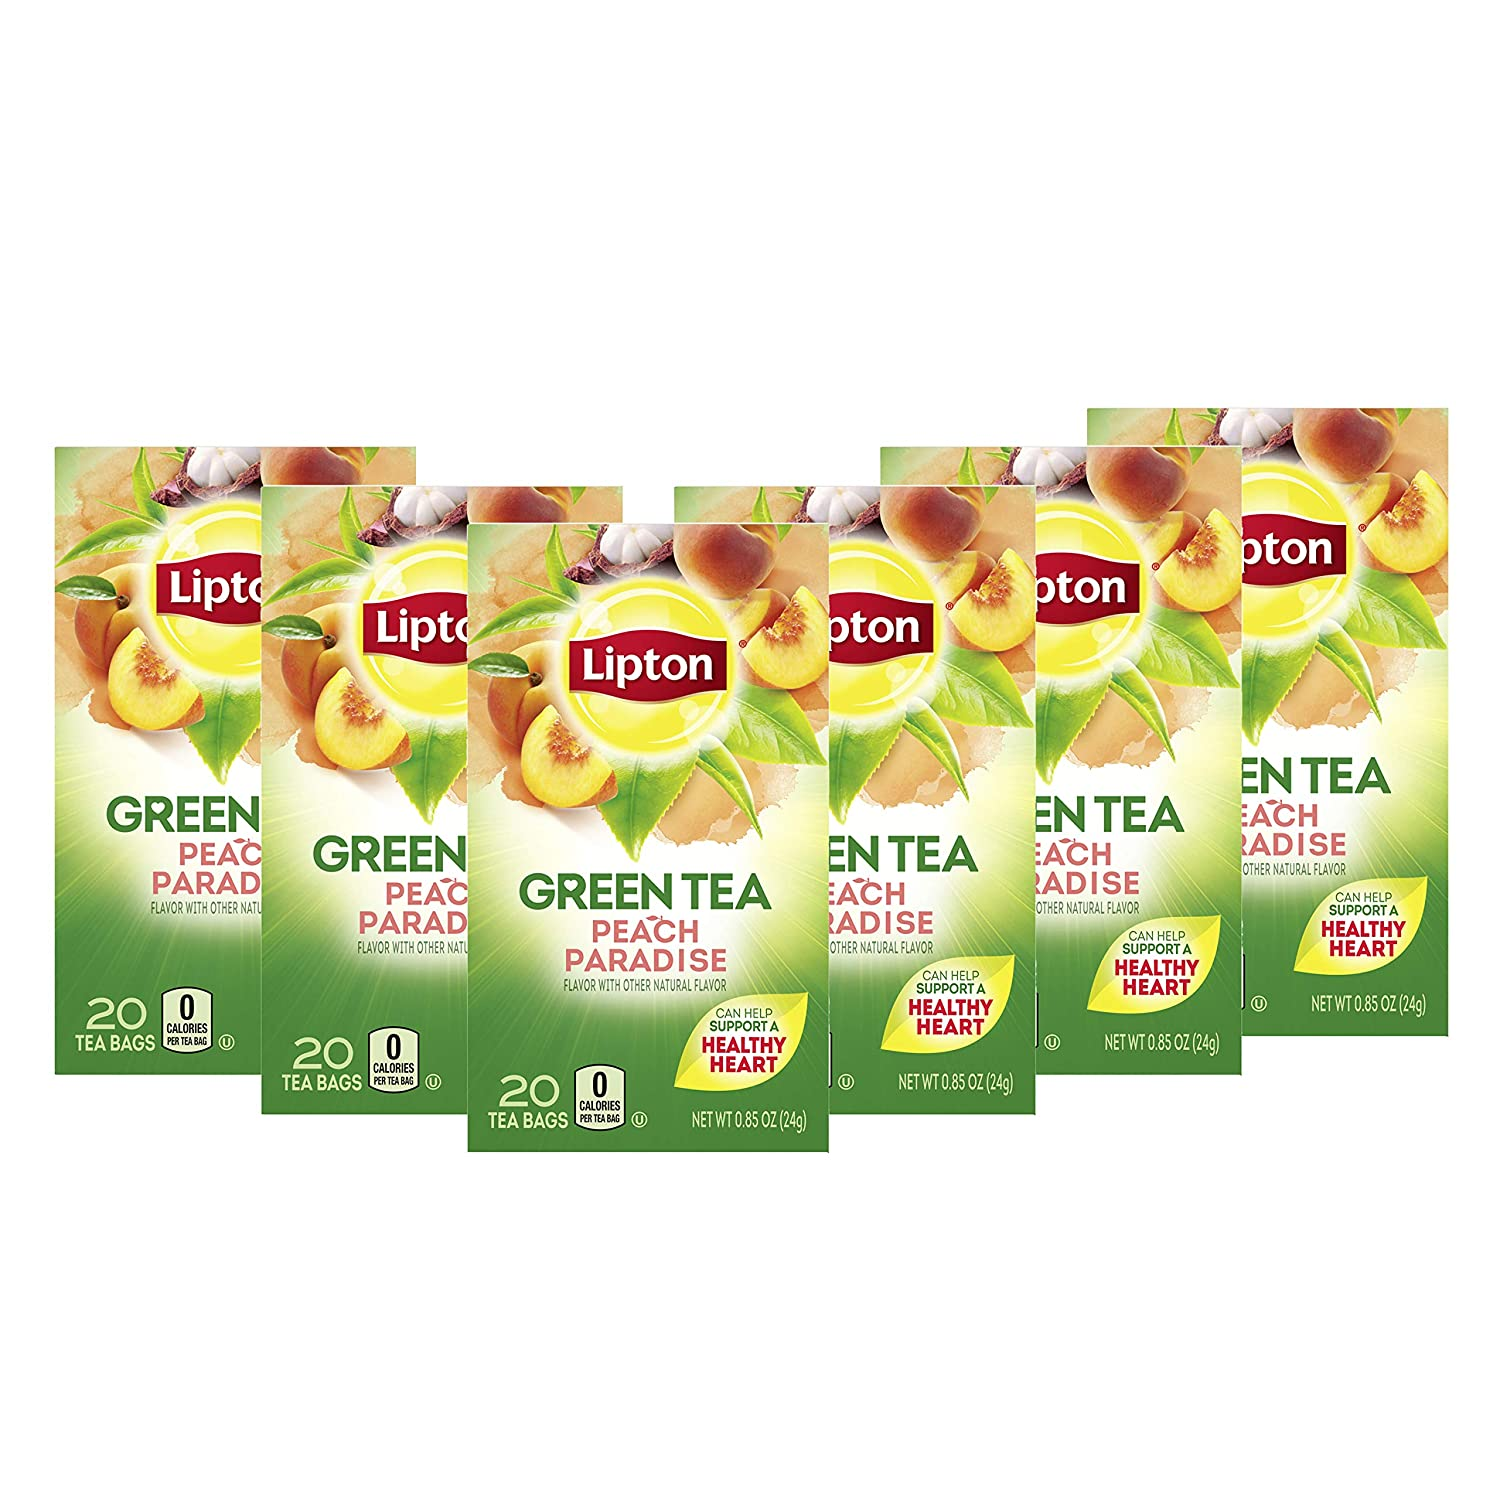 Lipton Green Tea Bags Flavored with Other Natural Flavors Peach Paradise Can Help Support a Healthy Heart 1.13 oz 20 Count, Pack of 6, Pack of 6